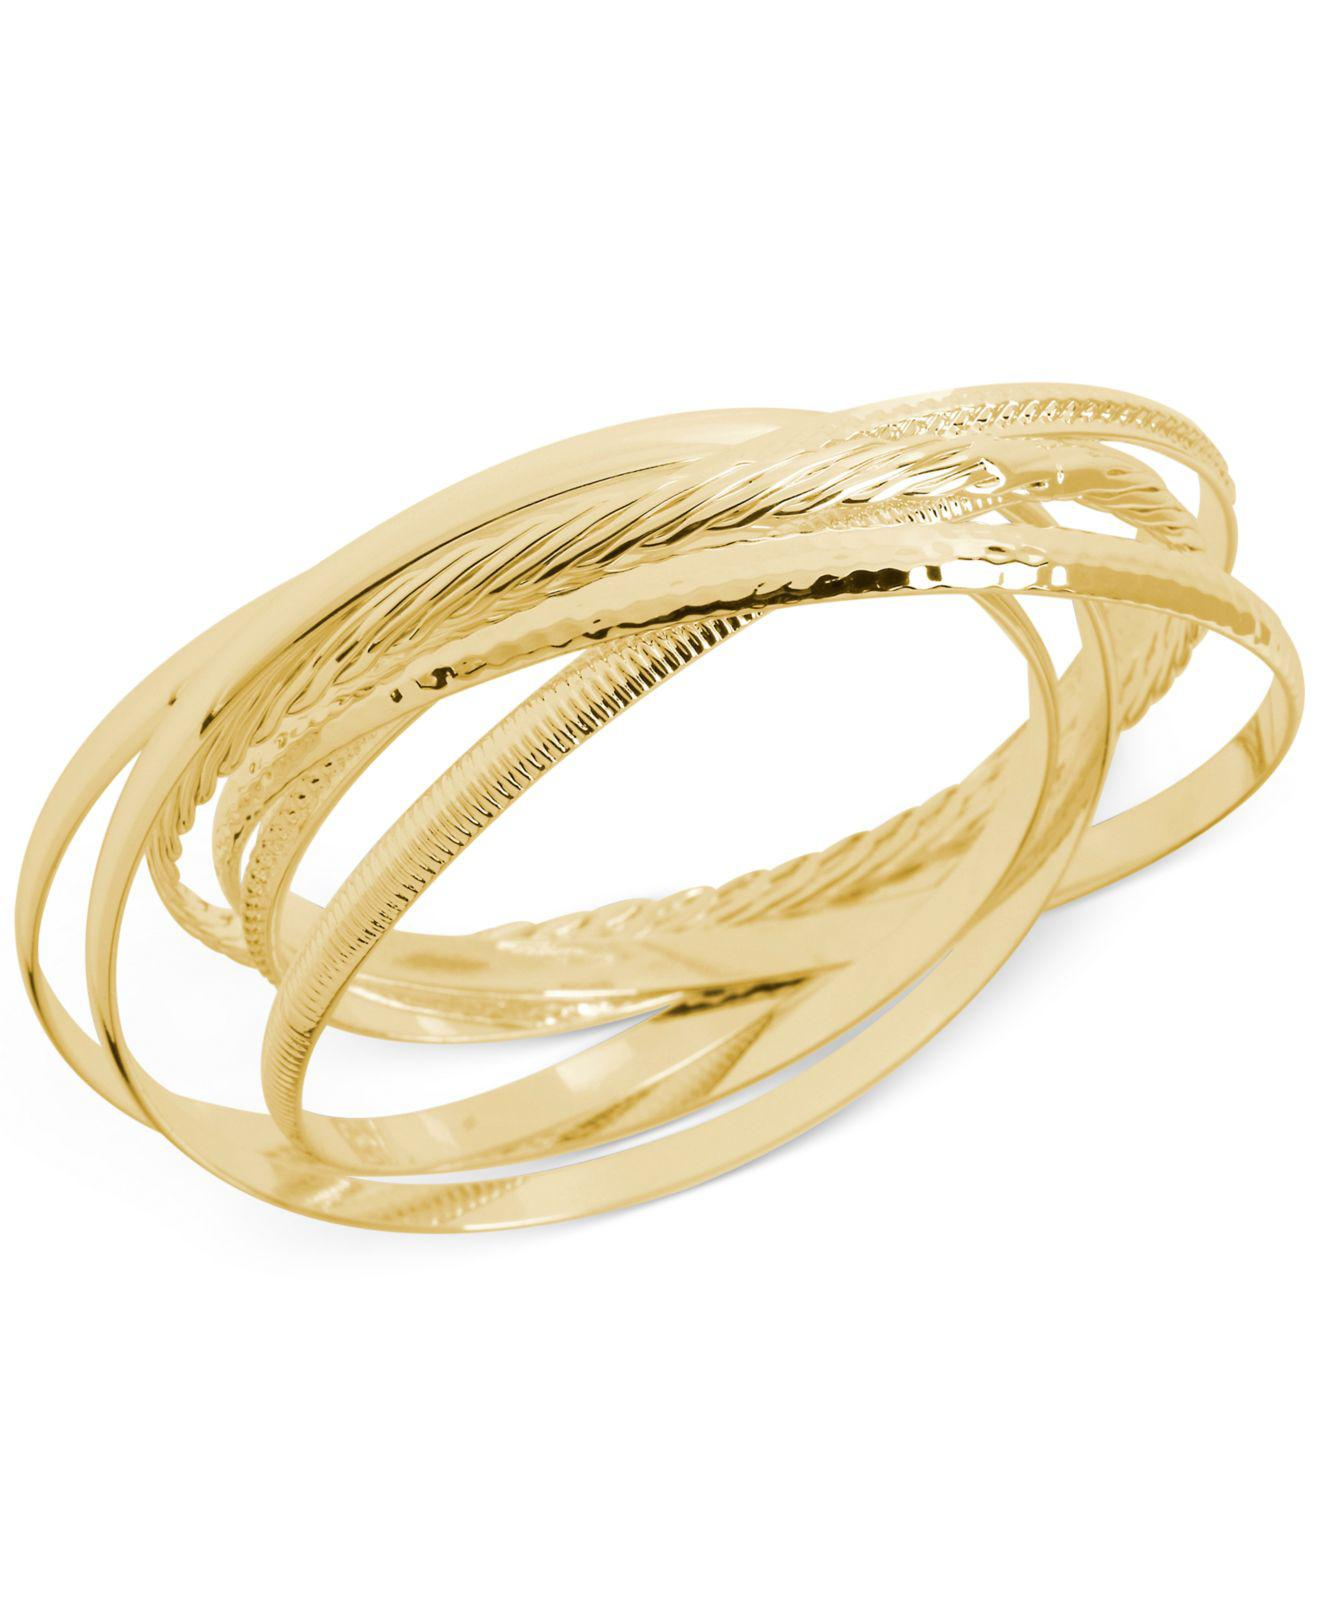 Sole Society Womens Textured Bangle Bracelet Set Gold One Size From Sole Society 8Ya80